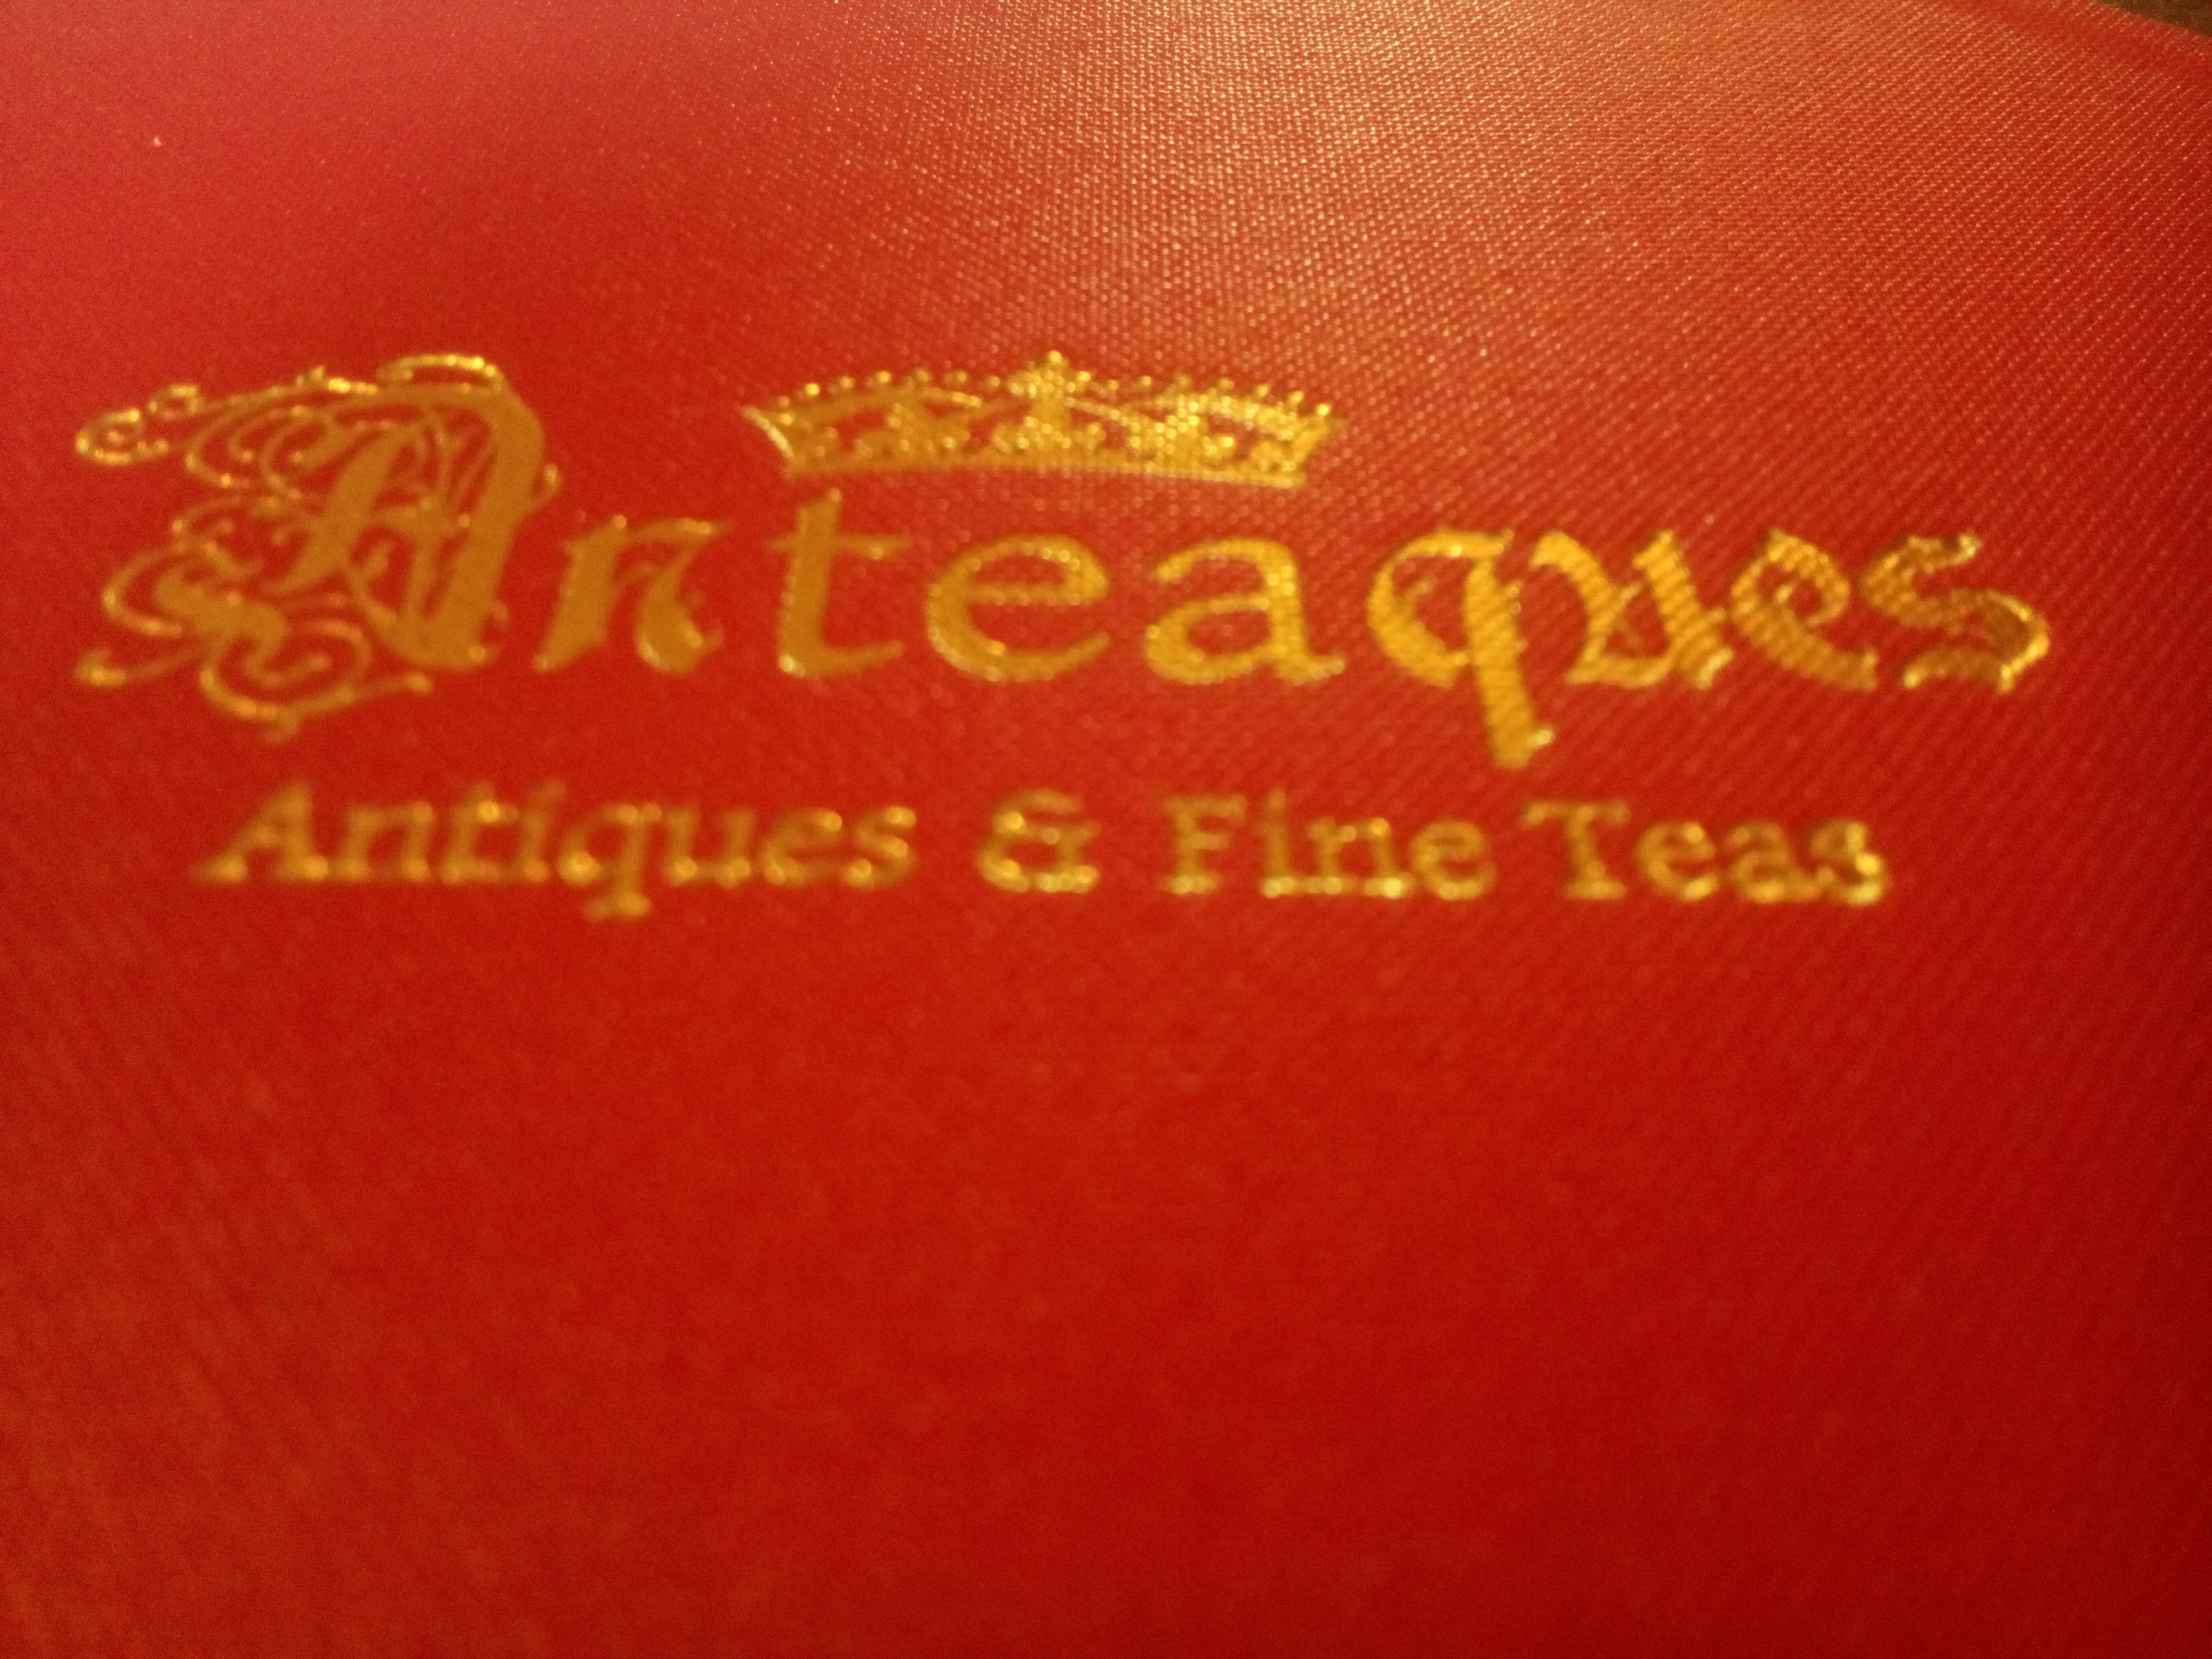 A red fabric menu with 'Anteaques' in gold inlay